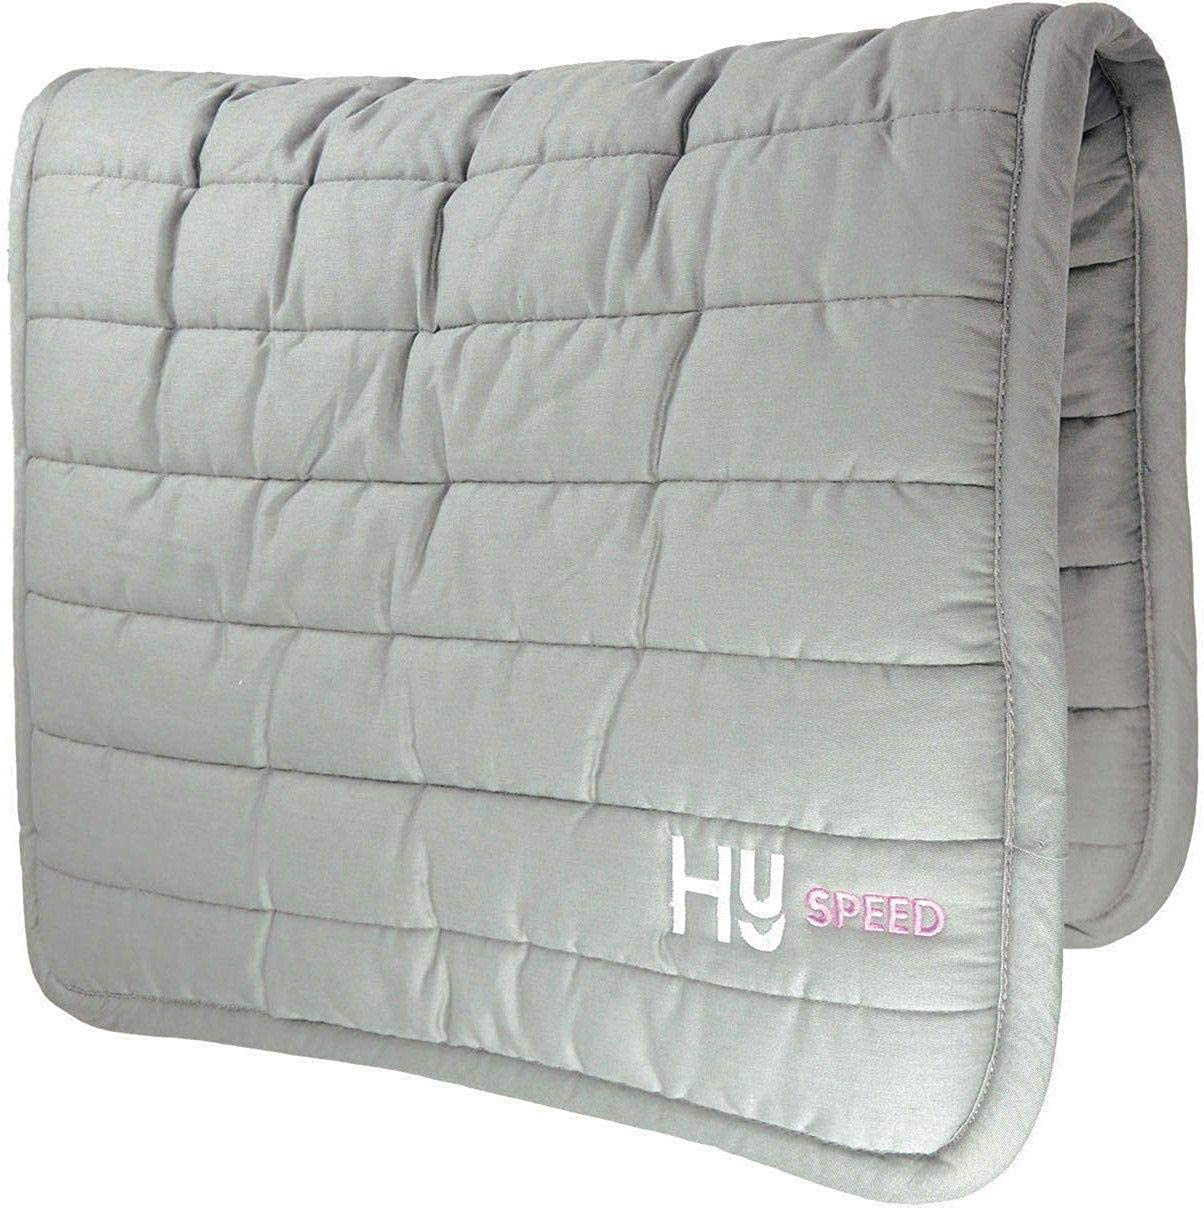 HySPEED Reversible Pad 67% OFF ! Super beauty product restock quality top! of fixed price Comfort